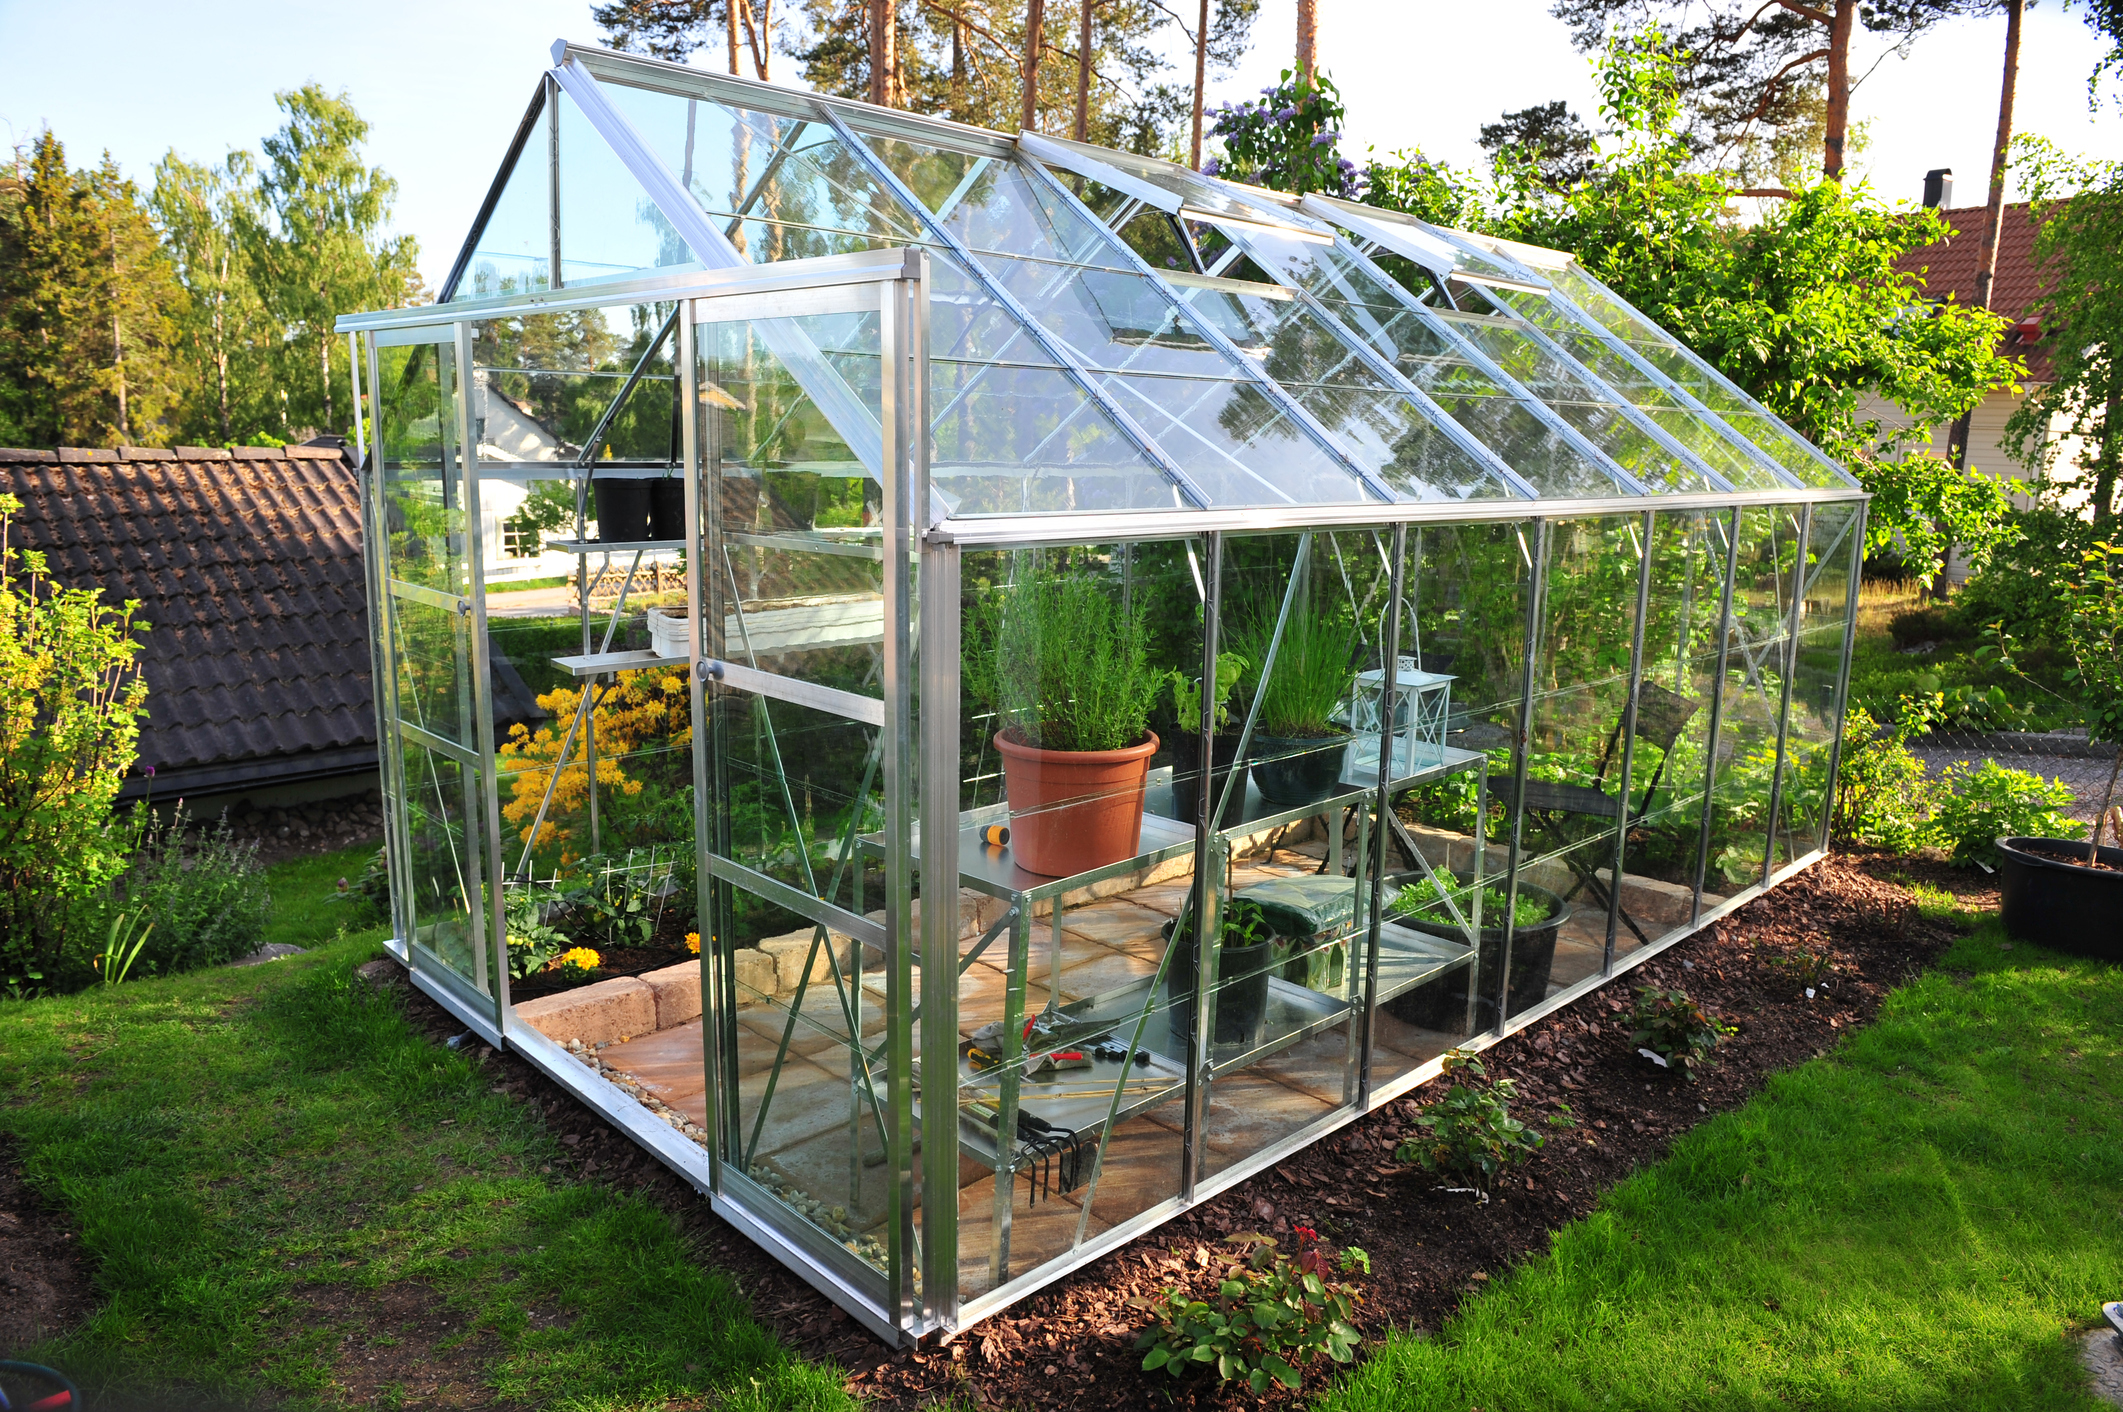 How Does a Greenhouse Work?